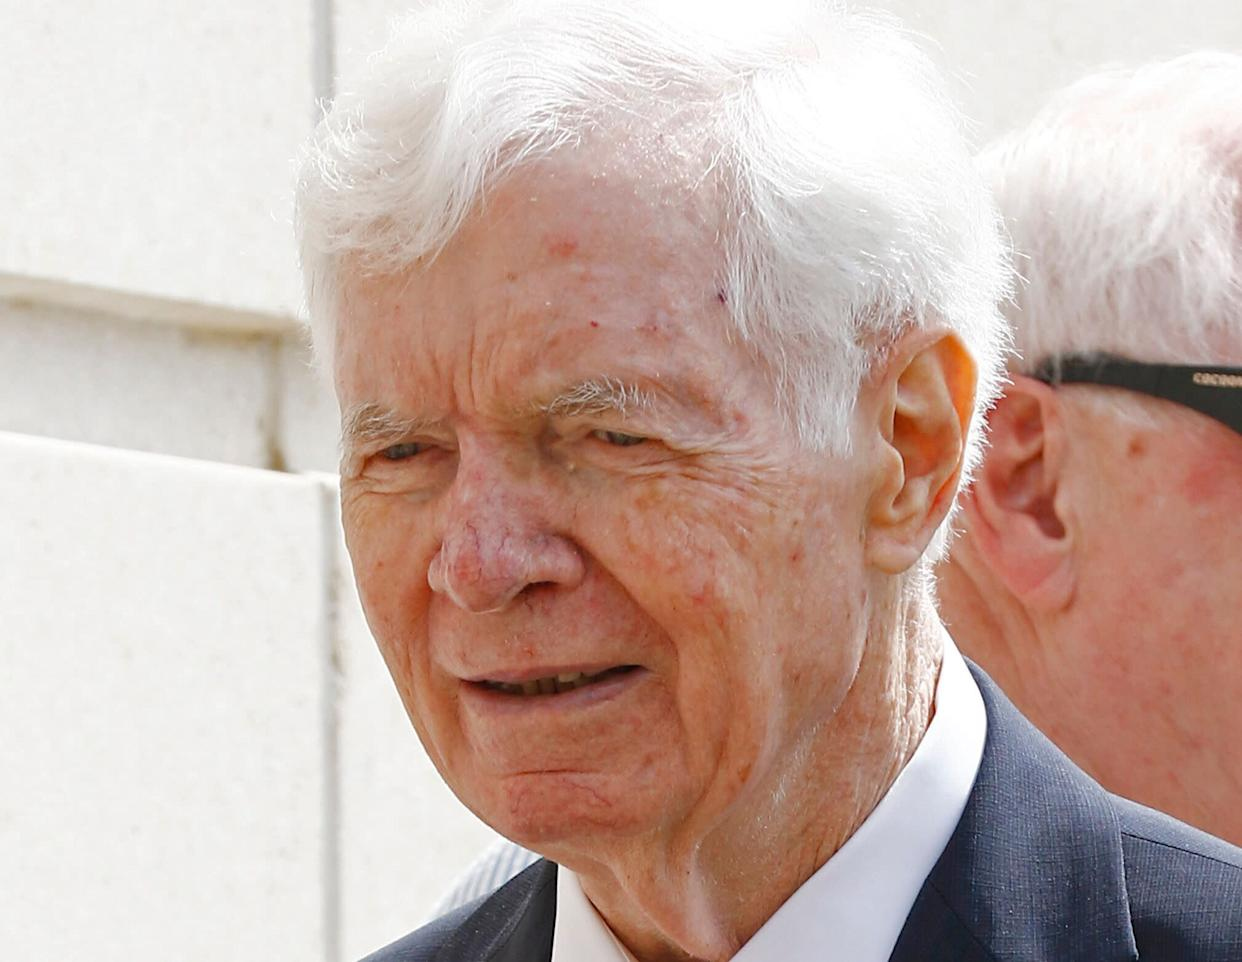 Navy veteran and former Sen. Thad Cochran (R-Miss.) died on May 30, 2019 at the age of 81.